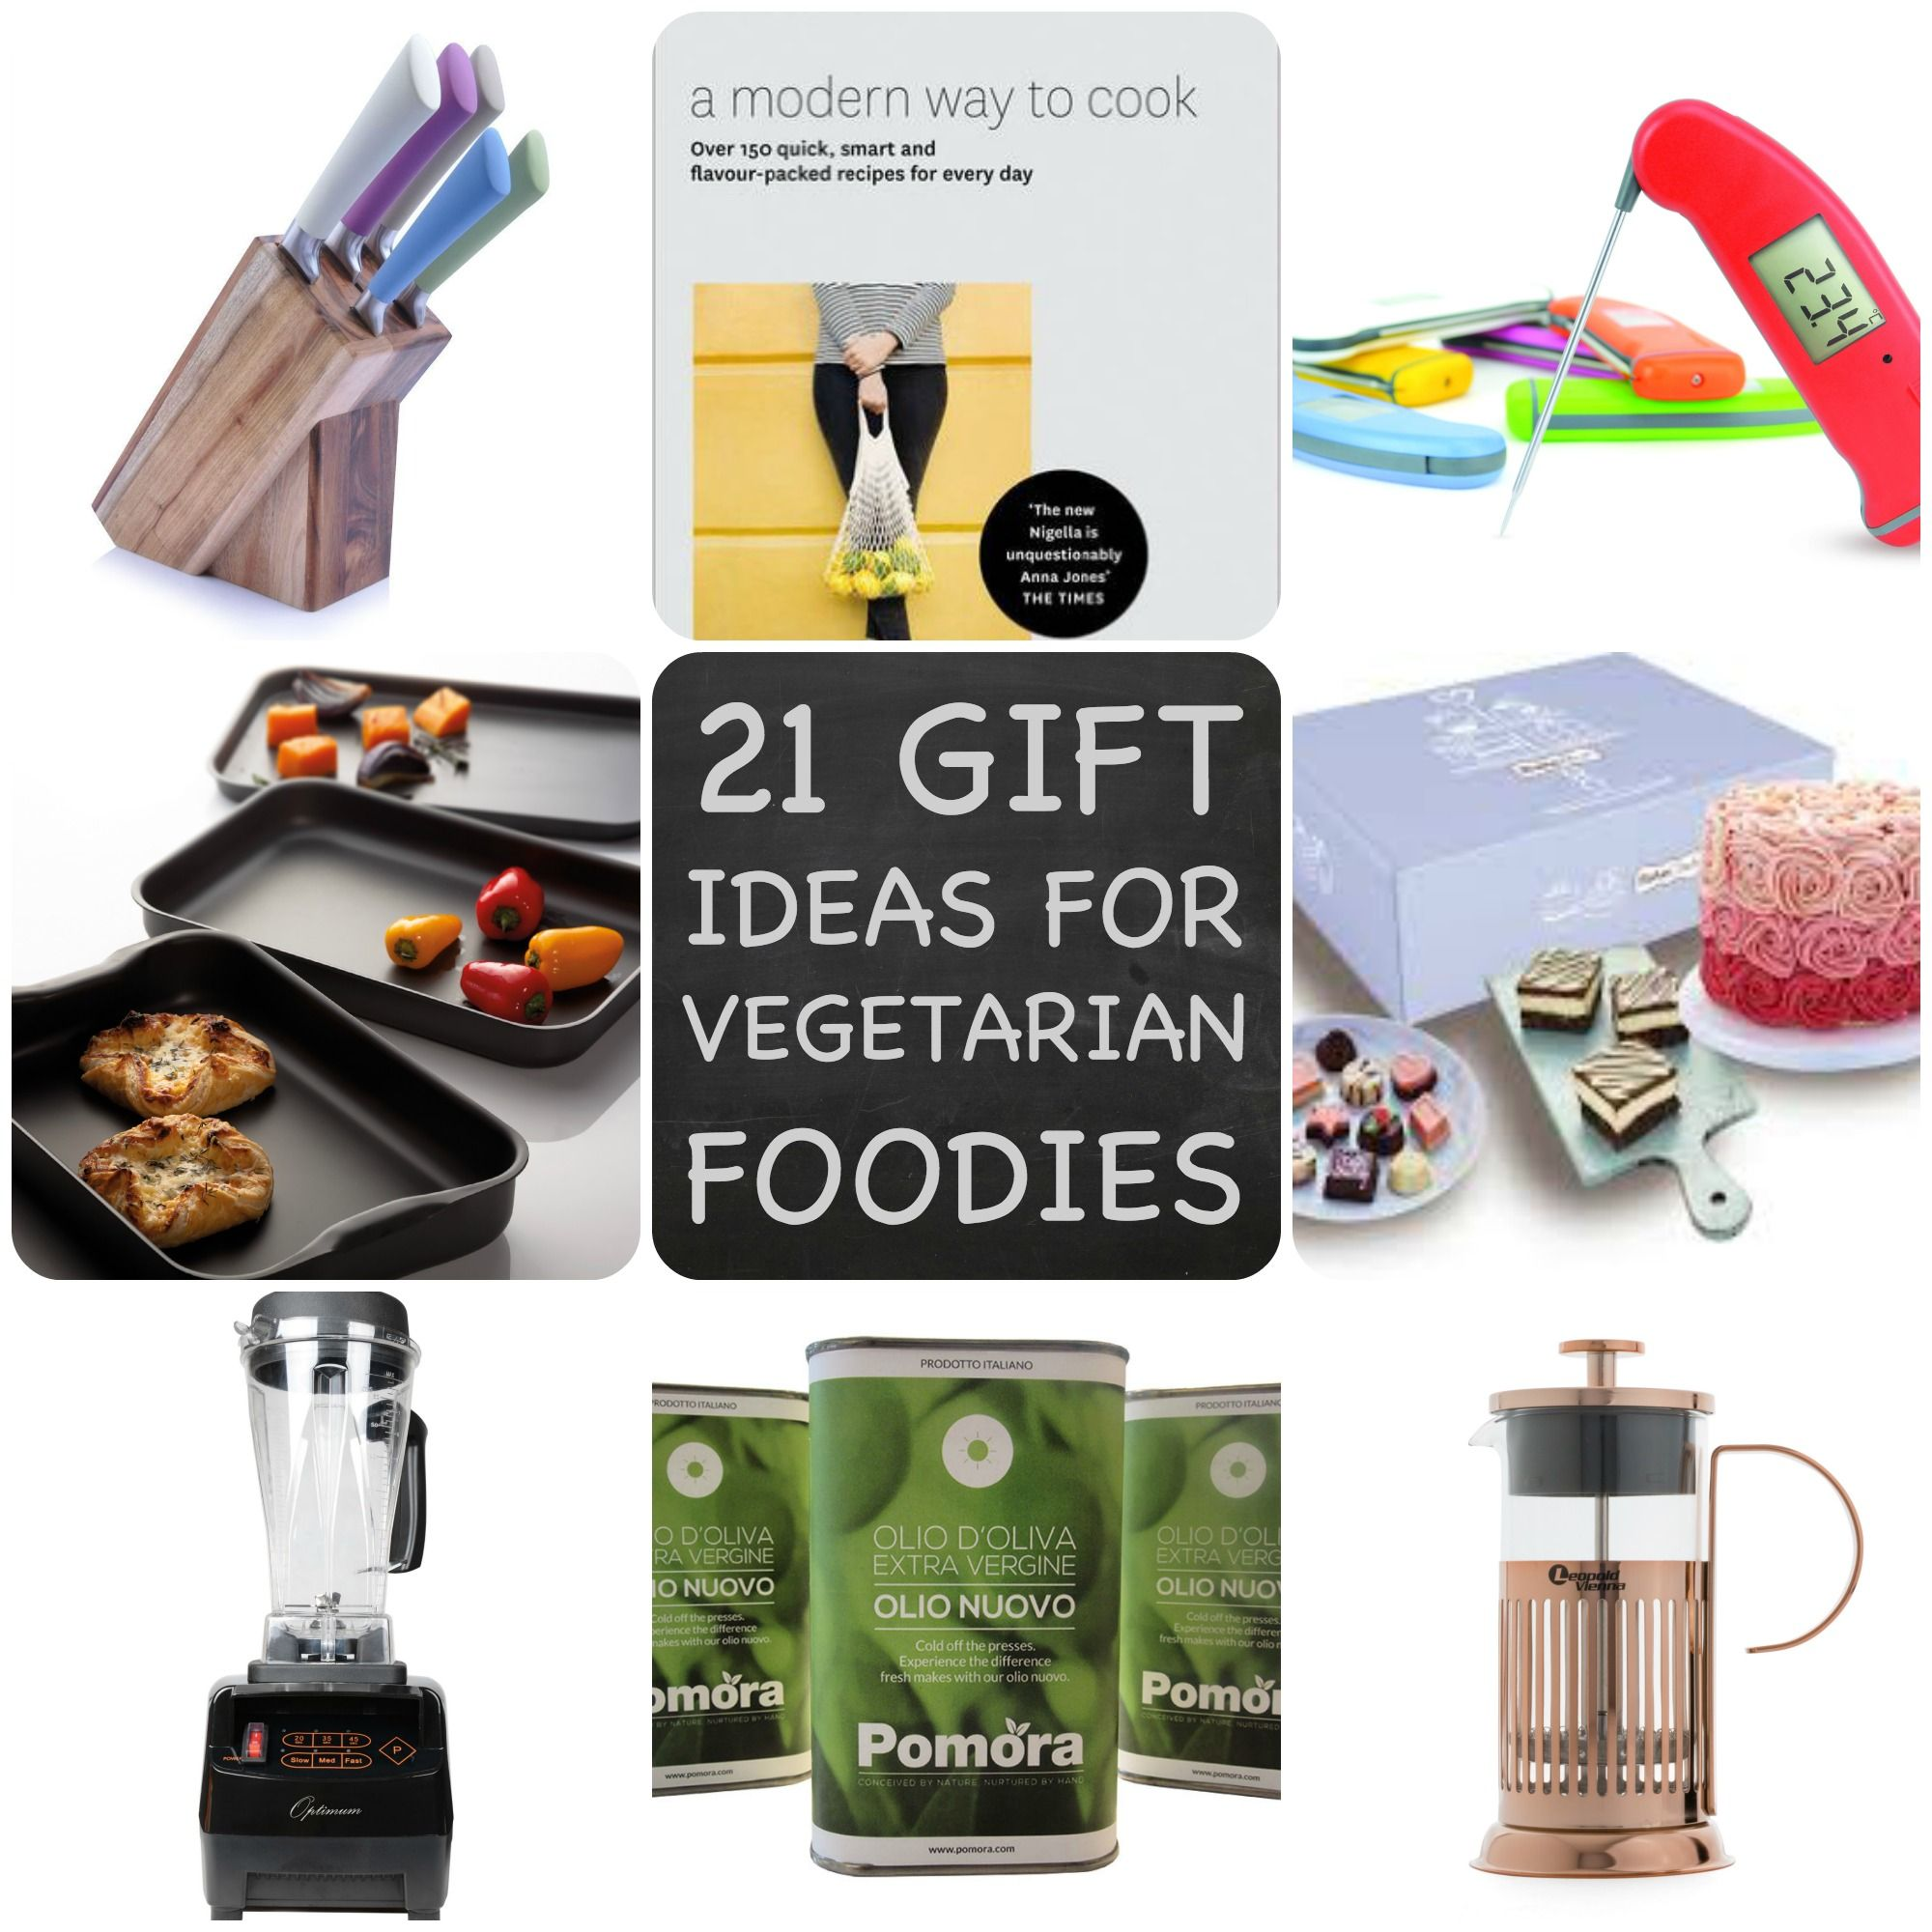 Beautiful Quirky Christmas Gift Ideas Part - 14: Hereu0027s A Roundup Of Some Unique And Quirky Christmas Gift Ideas For  Vegetarian And Vegan Foodies